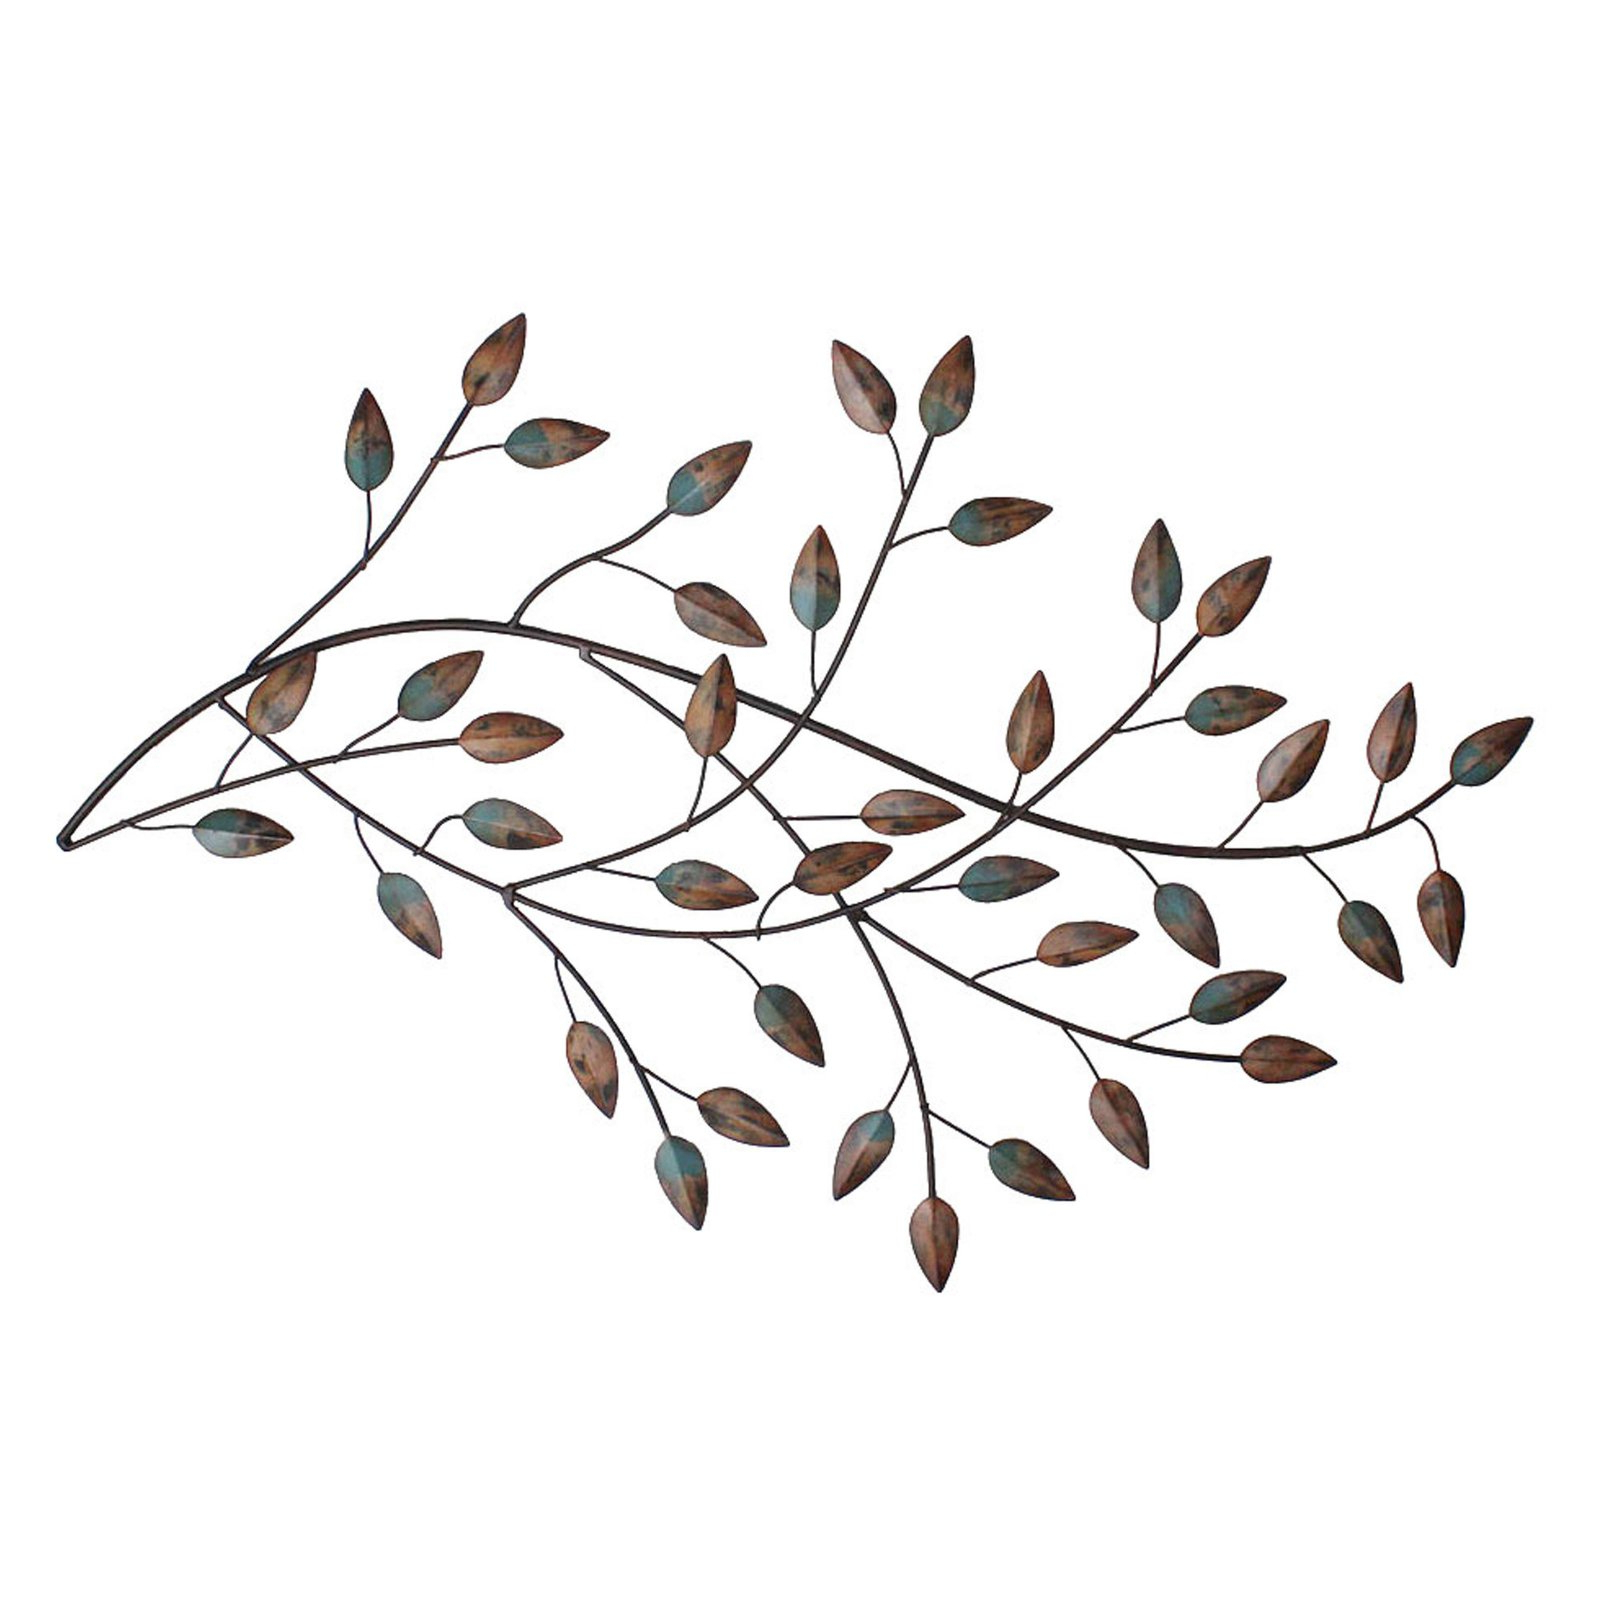 Latest Stratton Home Decor Blowing Leaves Wall Decor – Walmart In Blowing Leaves Wall Decor (View 9 of 20)